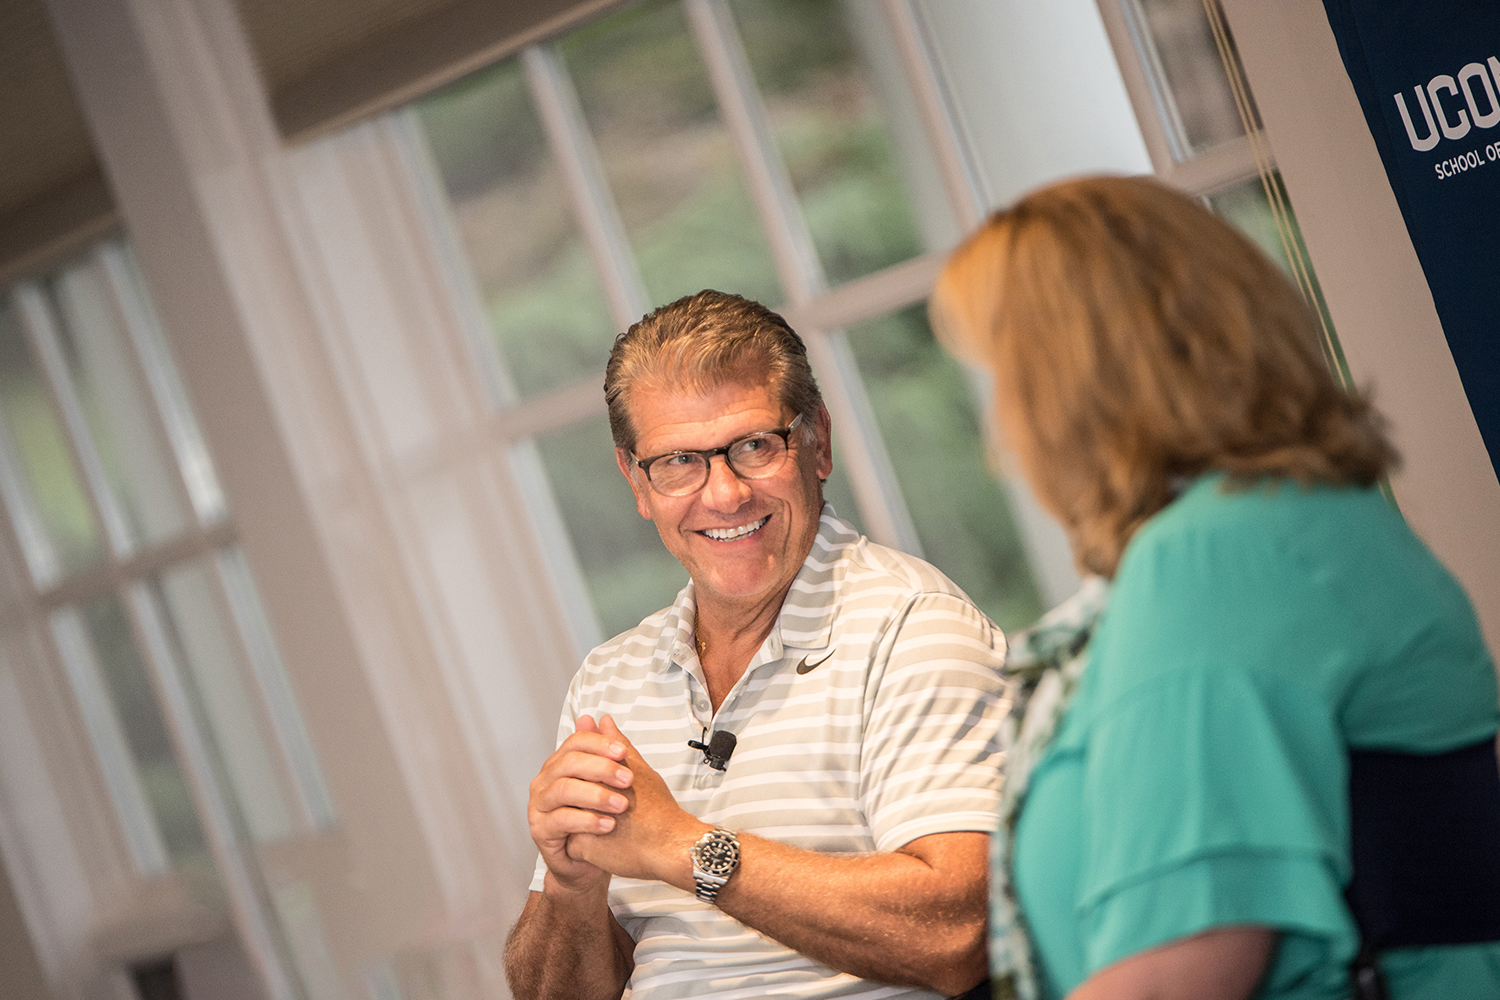 Geno Auriemma, head coach of the UConn Women's Basketball program, shared stories of basketball, leadership and success with the new cohort of the Executive MBA program on Thursday. Lucy Gilson, head of the management department, served as event moderator. (Nathan Oldham/UConn School of Business)